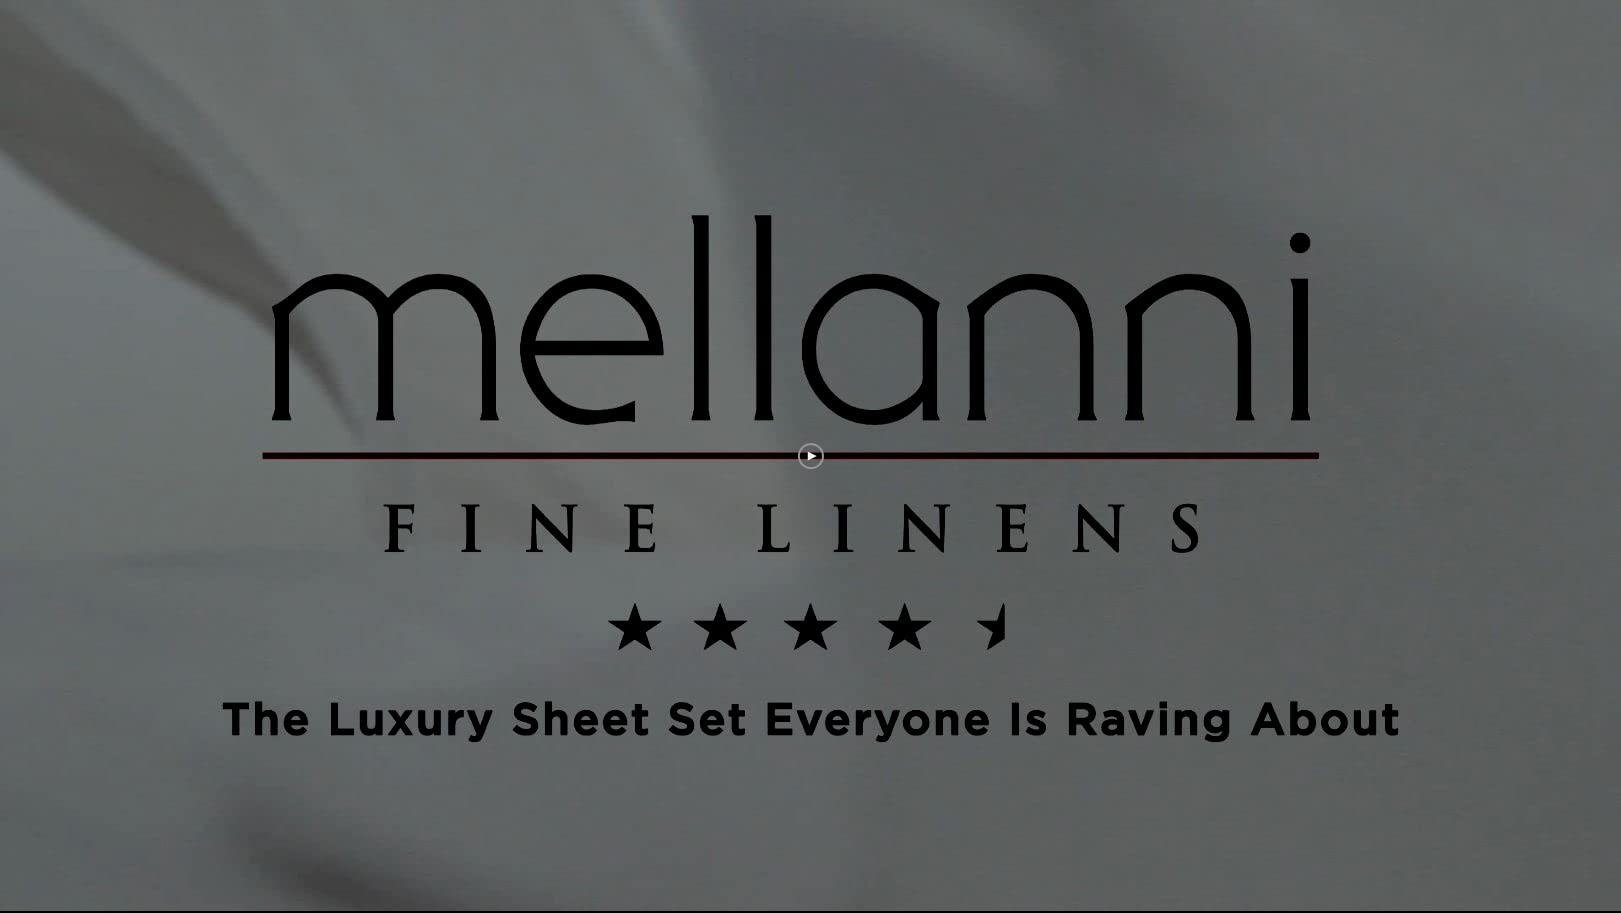 home, kitchen, bedding, sheets, pillowcases,  sheet, pillowcase sets 1 discount Mellanni Bed Sheet Set - Brushed Microfiber 1800 Bedding promotion